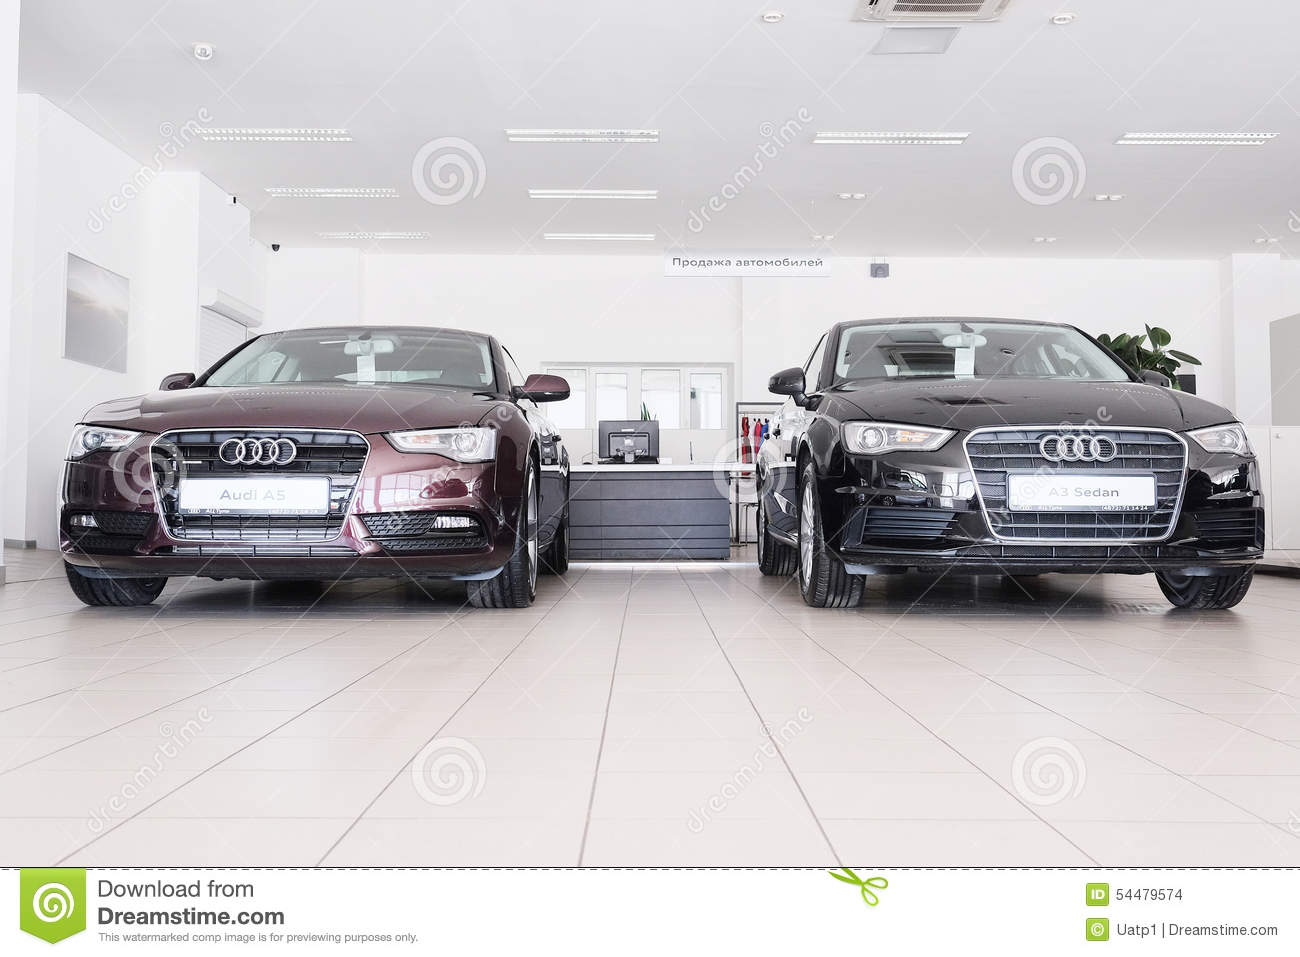 Cars in a dealer s showroom in Moscow, Russia